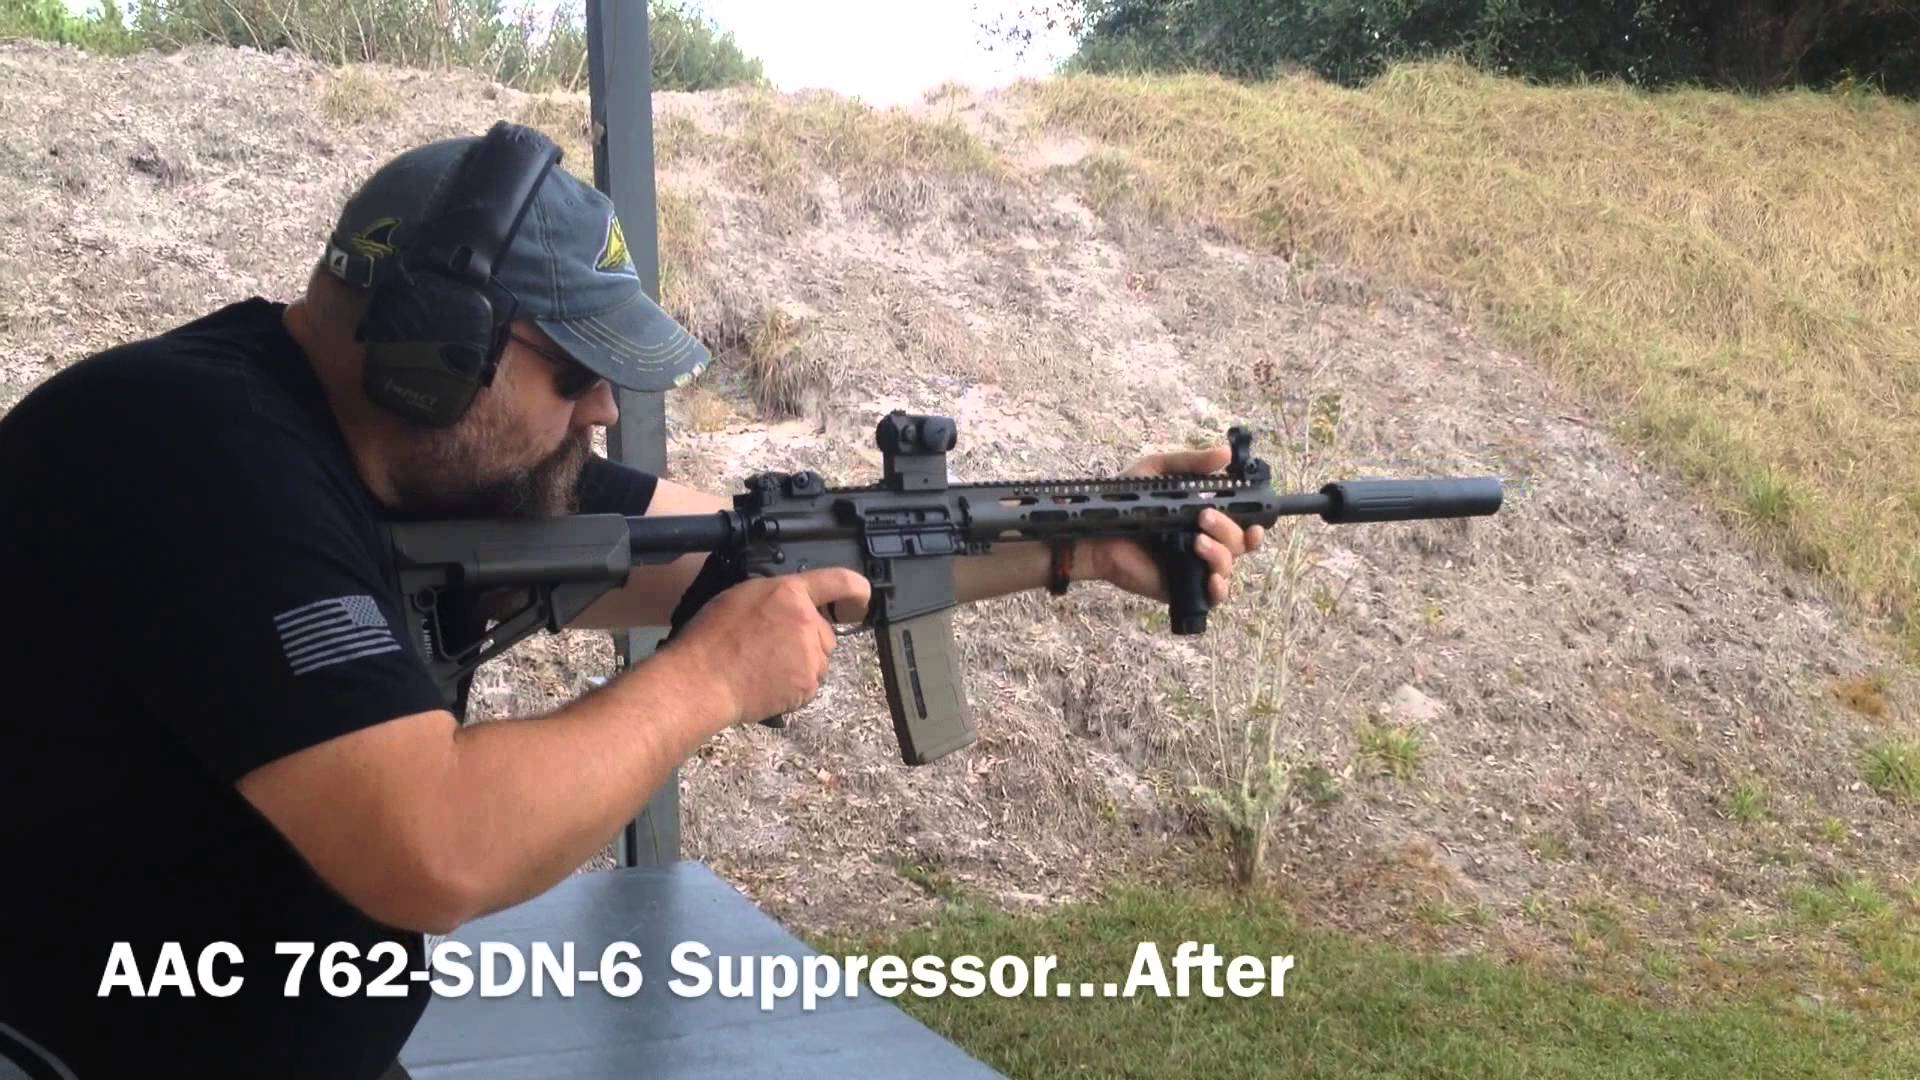 Shooting Suppressed Colt LE 6920 Rifle Tactical Fringe & Mr. YACYAS